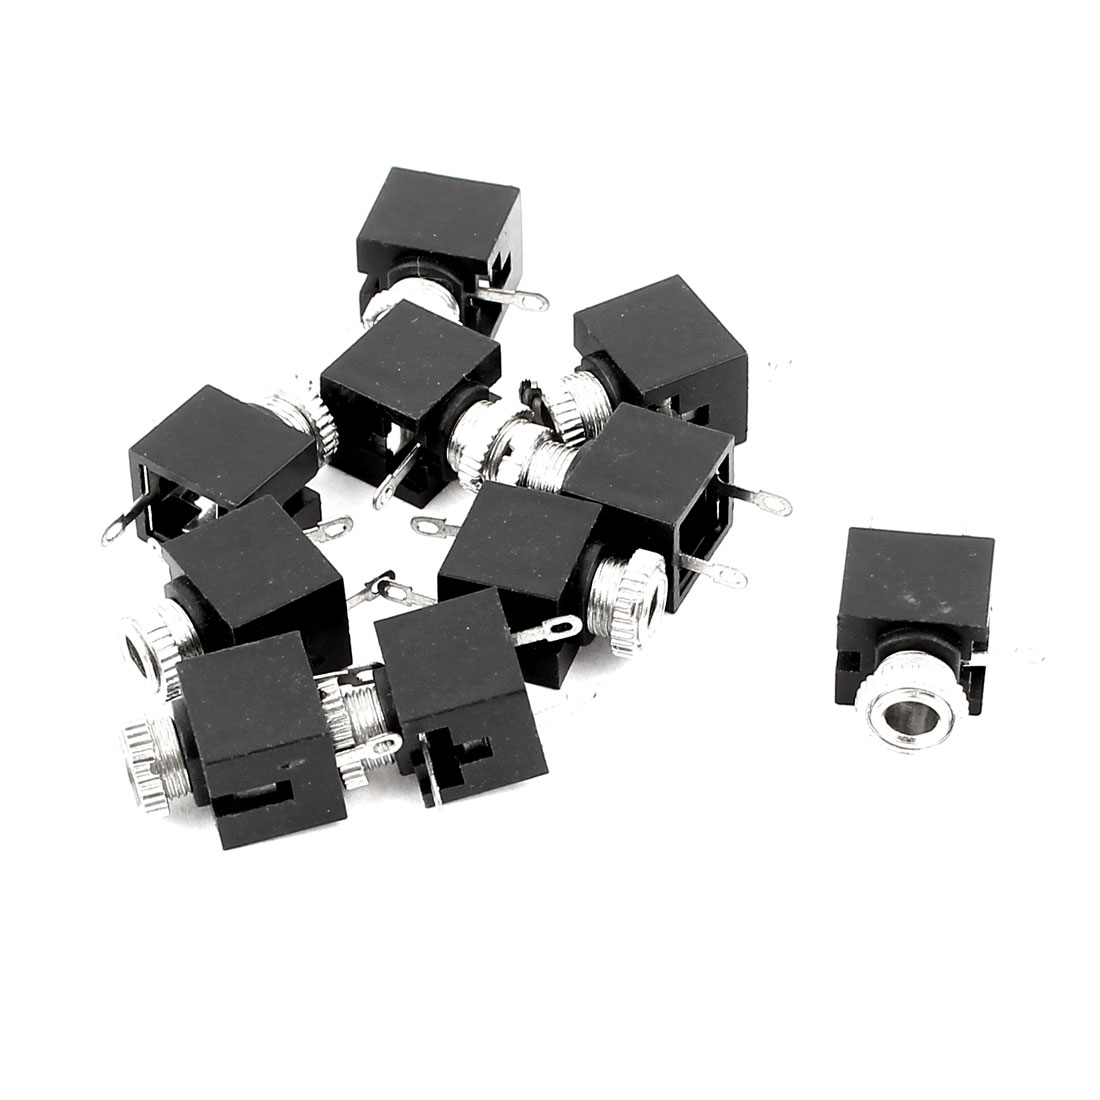 10Pcs 3P 3.5mm Female Headphone Audio Jack Socket PCB Mount Connector